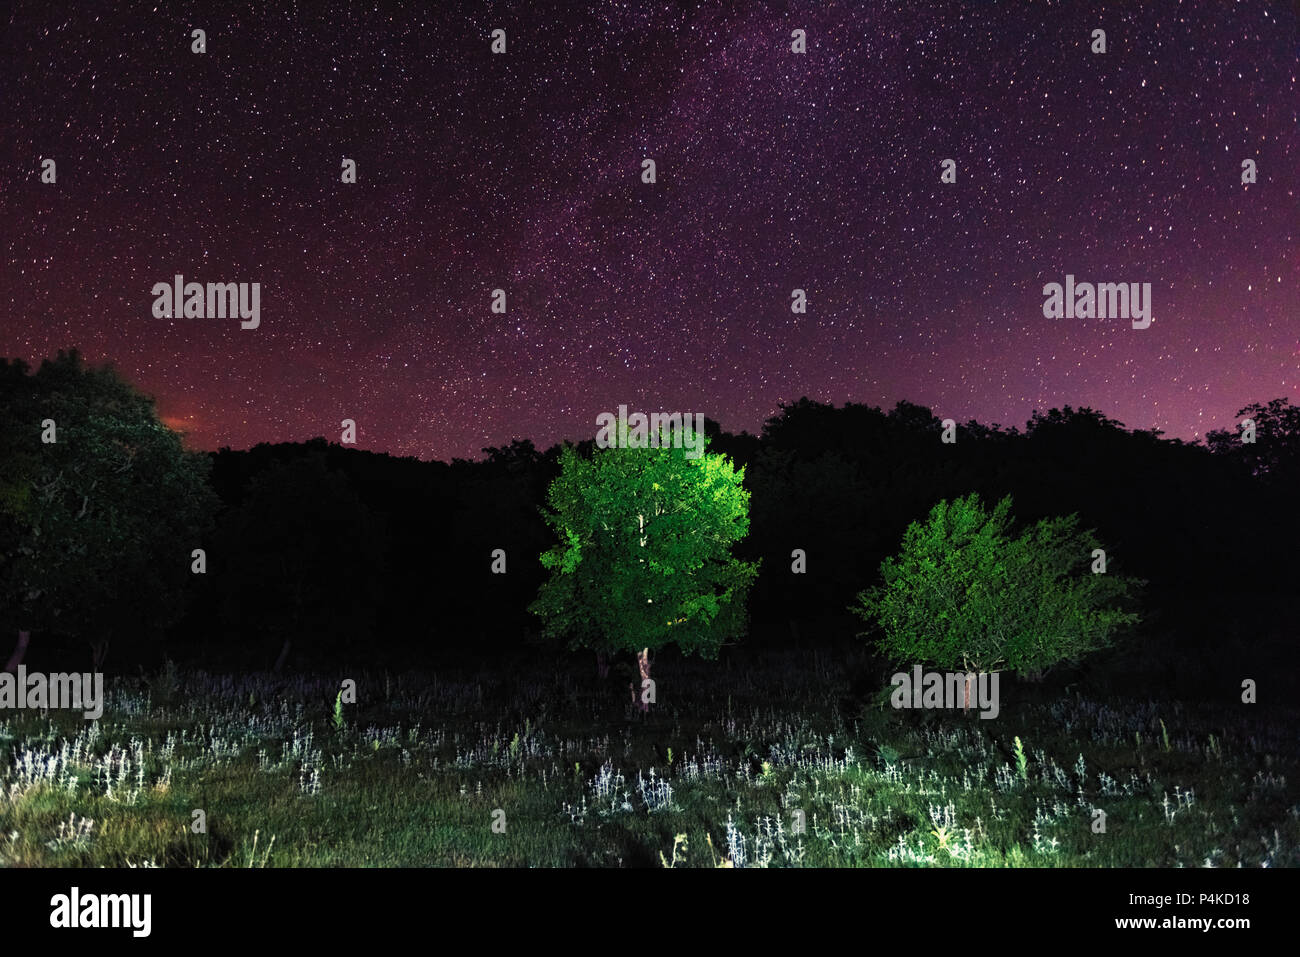 Starry sky over the forest - Stock Image